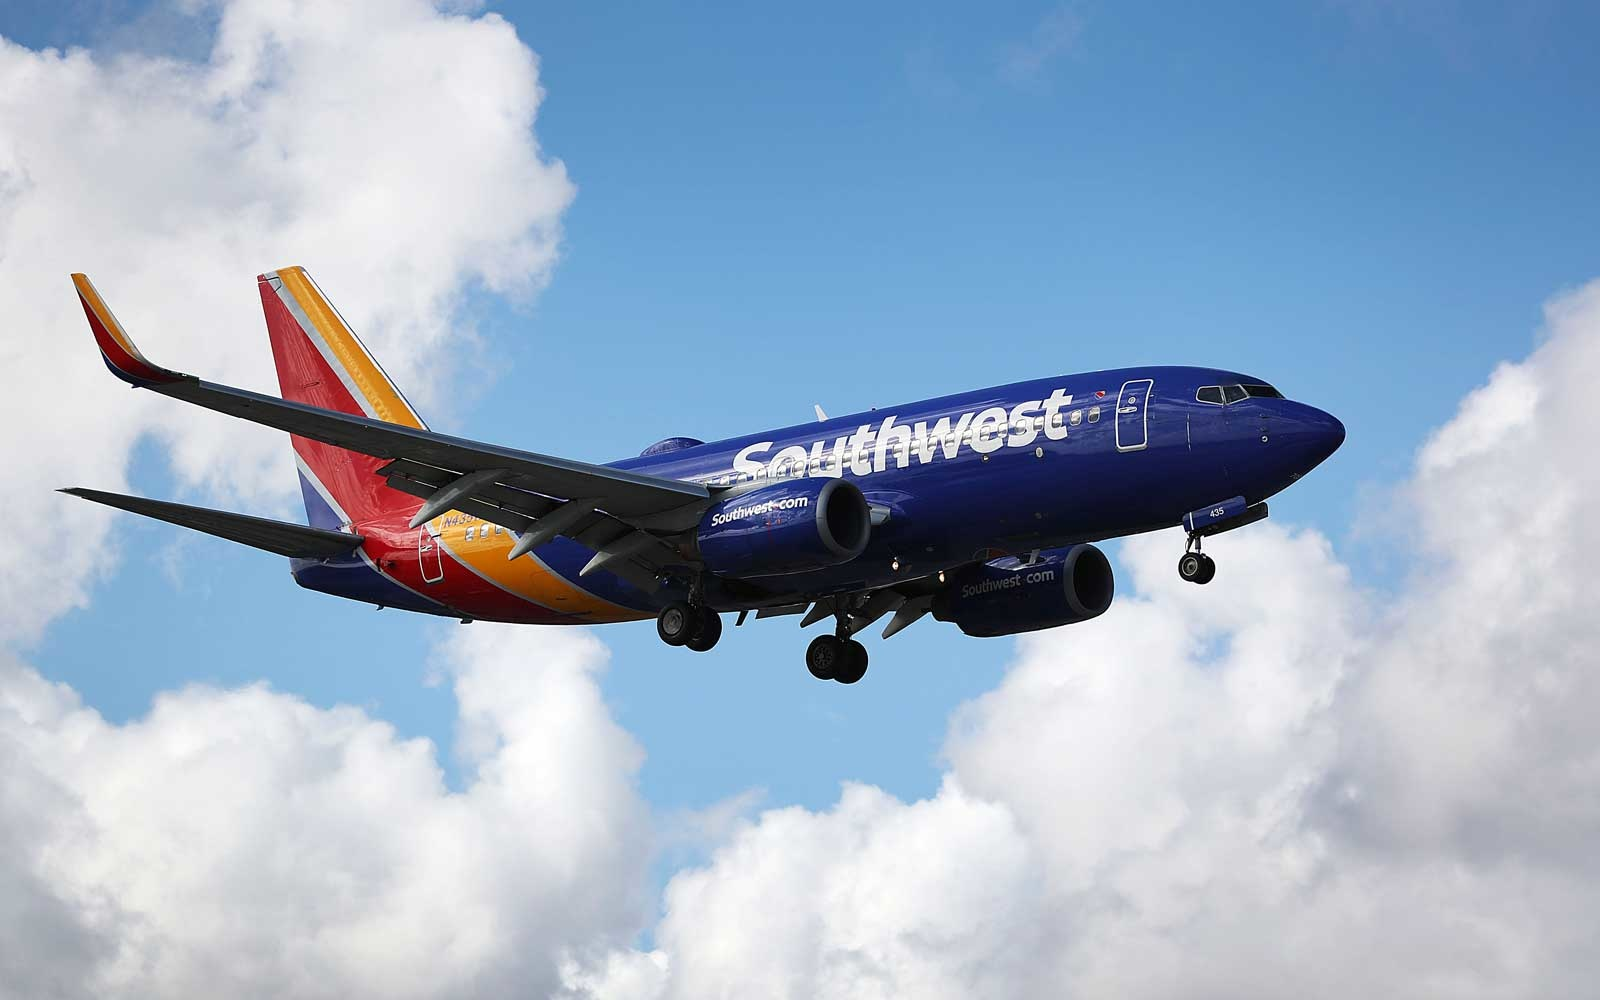 Southwest has $99 flights to Hawaii (if you book right now)